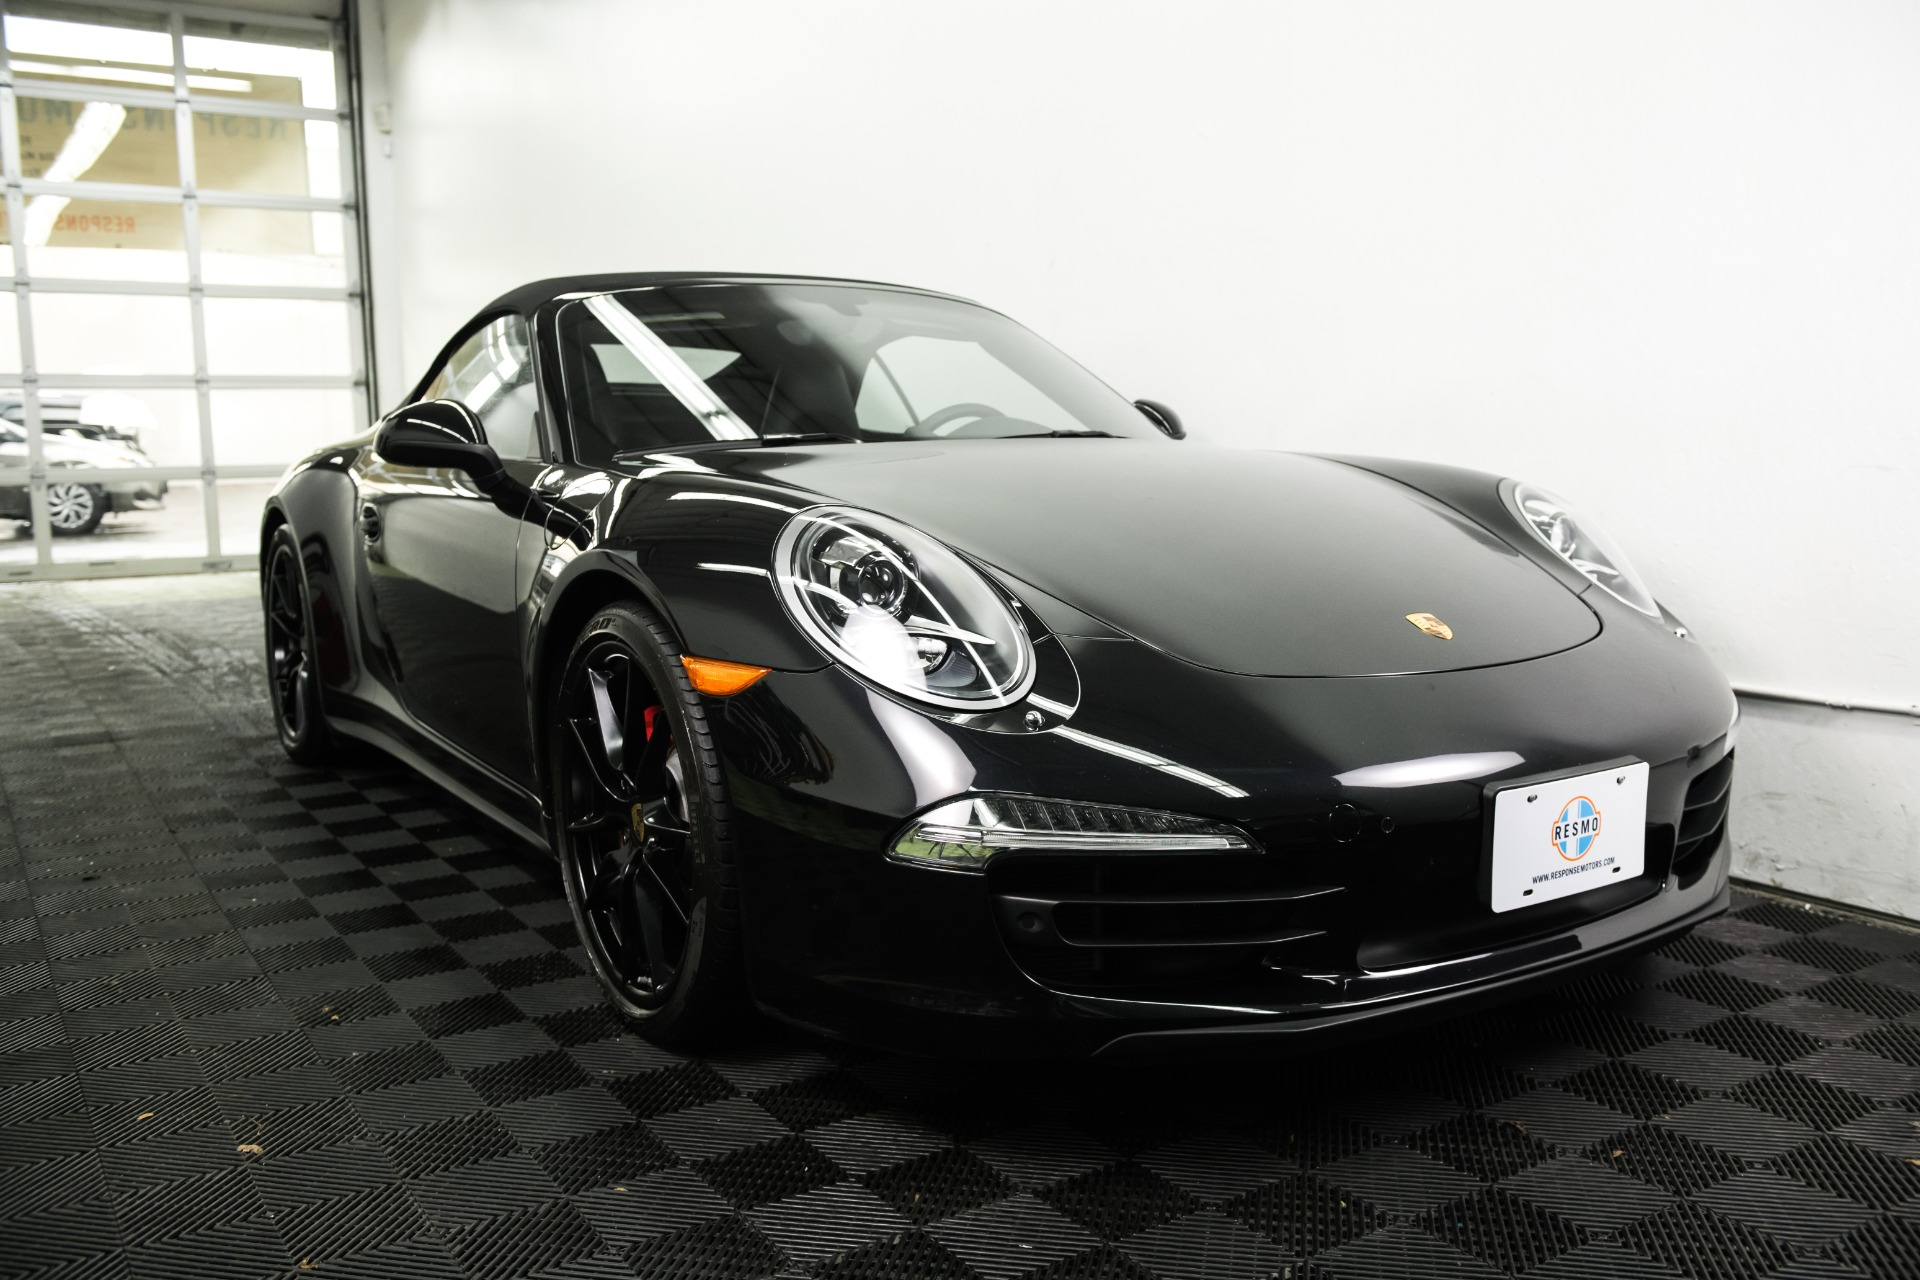 Used 2014 Porsche 911 Carrera 4S Used 2014 Porsche 911 Carrera 4S for sale Sold at Response Motors in Mountain View CA 3